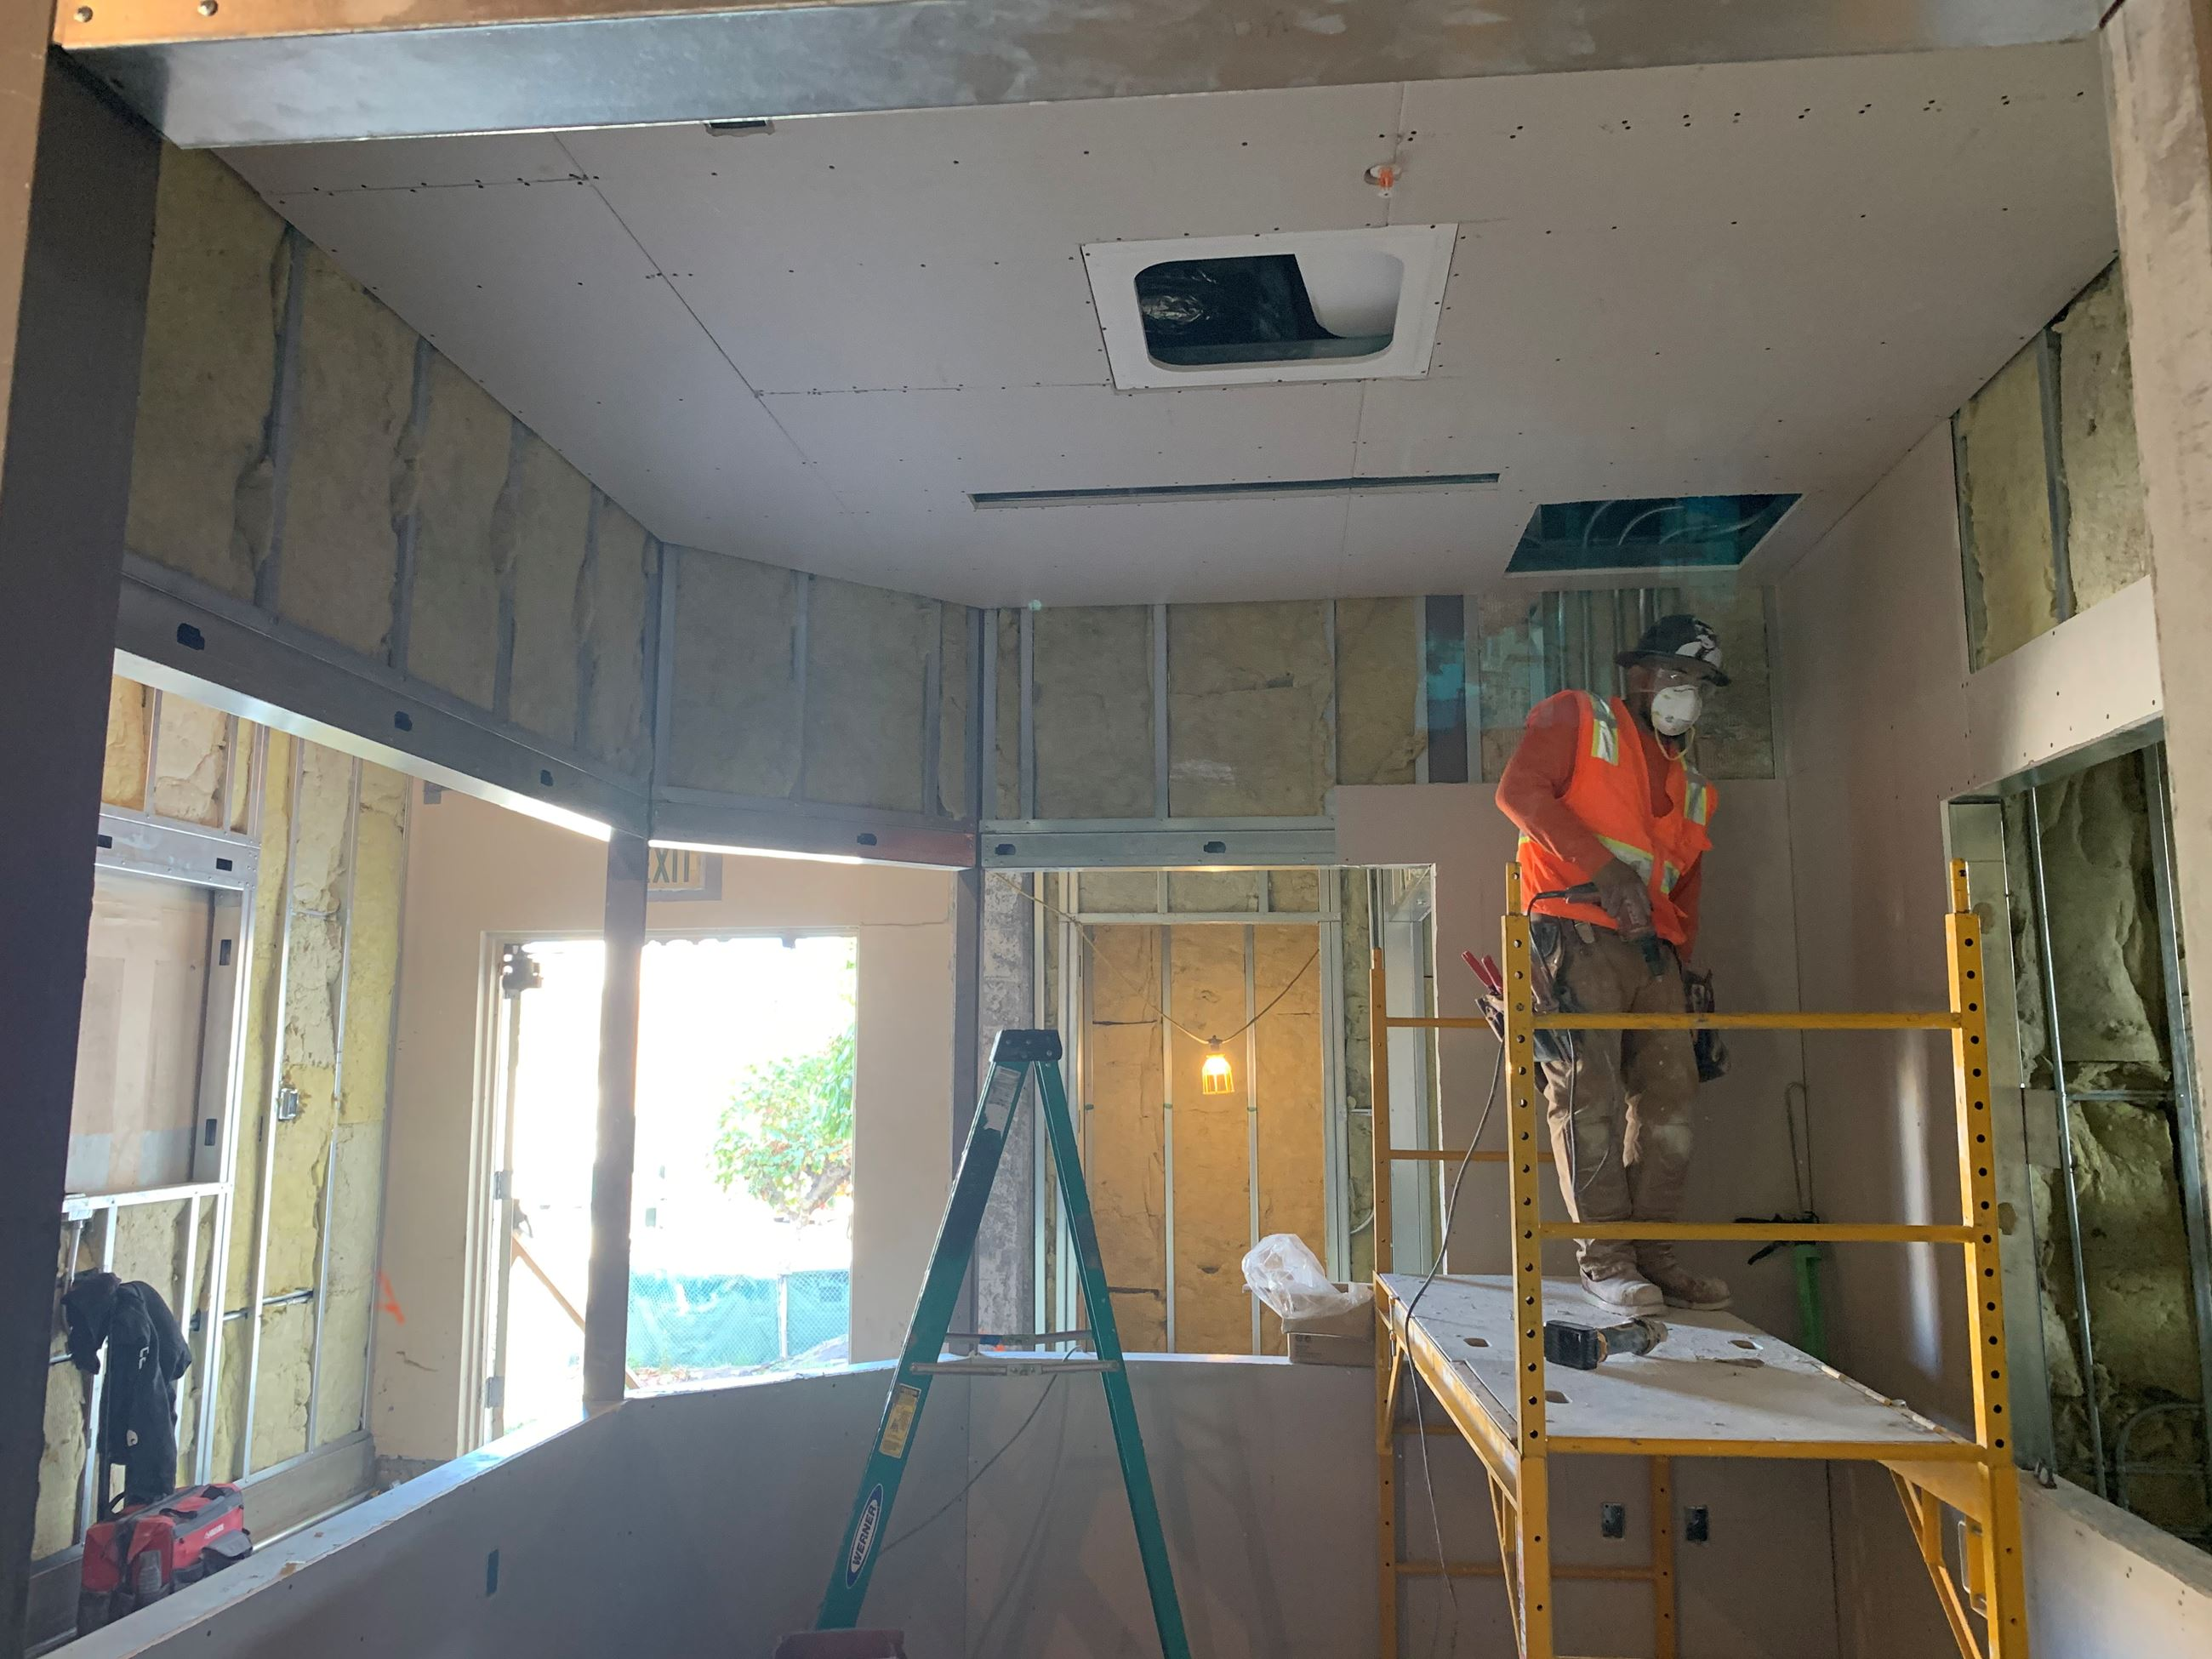 Construction worker installing drywall in front office of pool building.